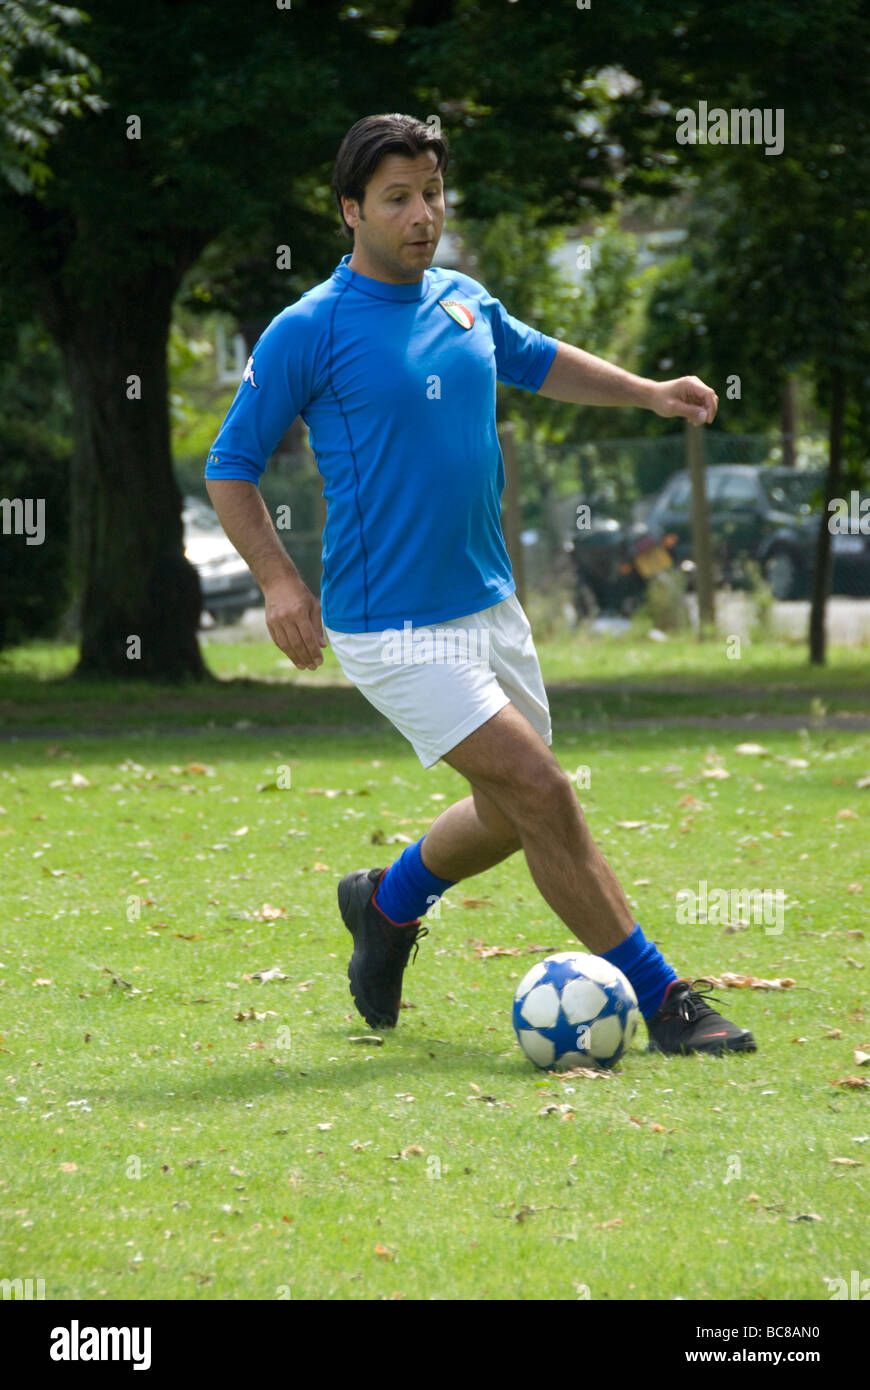 footballer in the park dribbling a ball - Stock Image